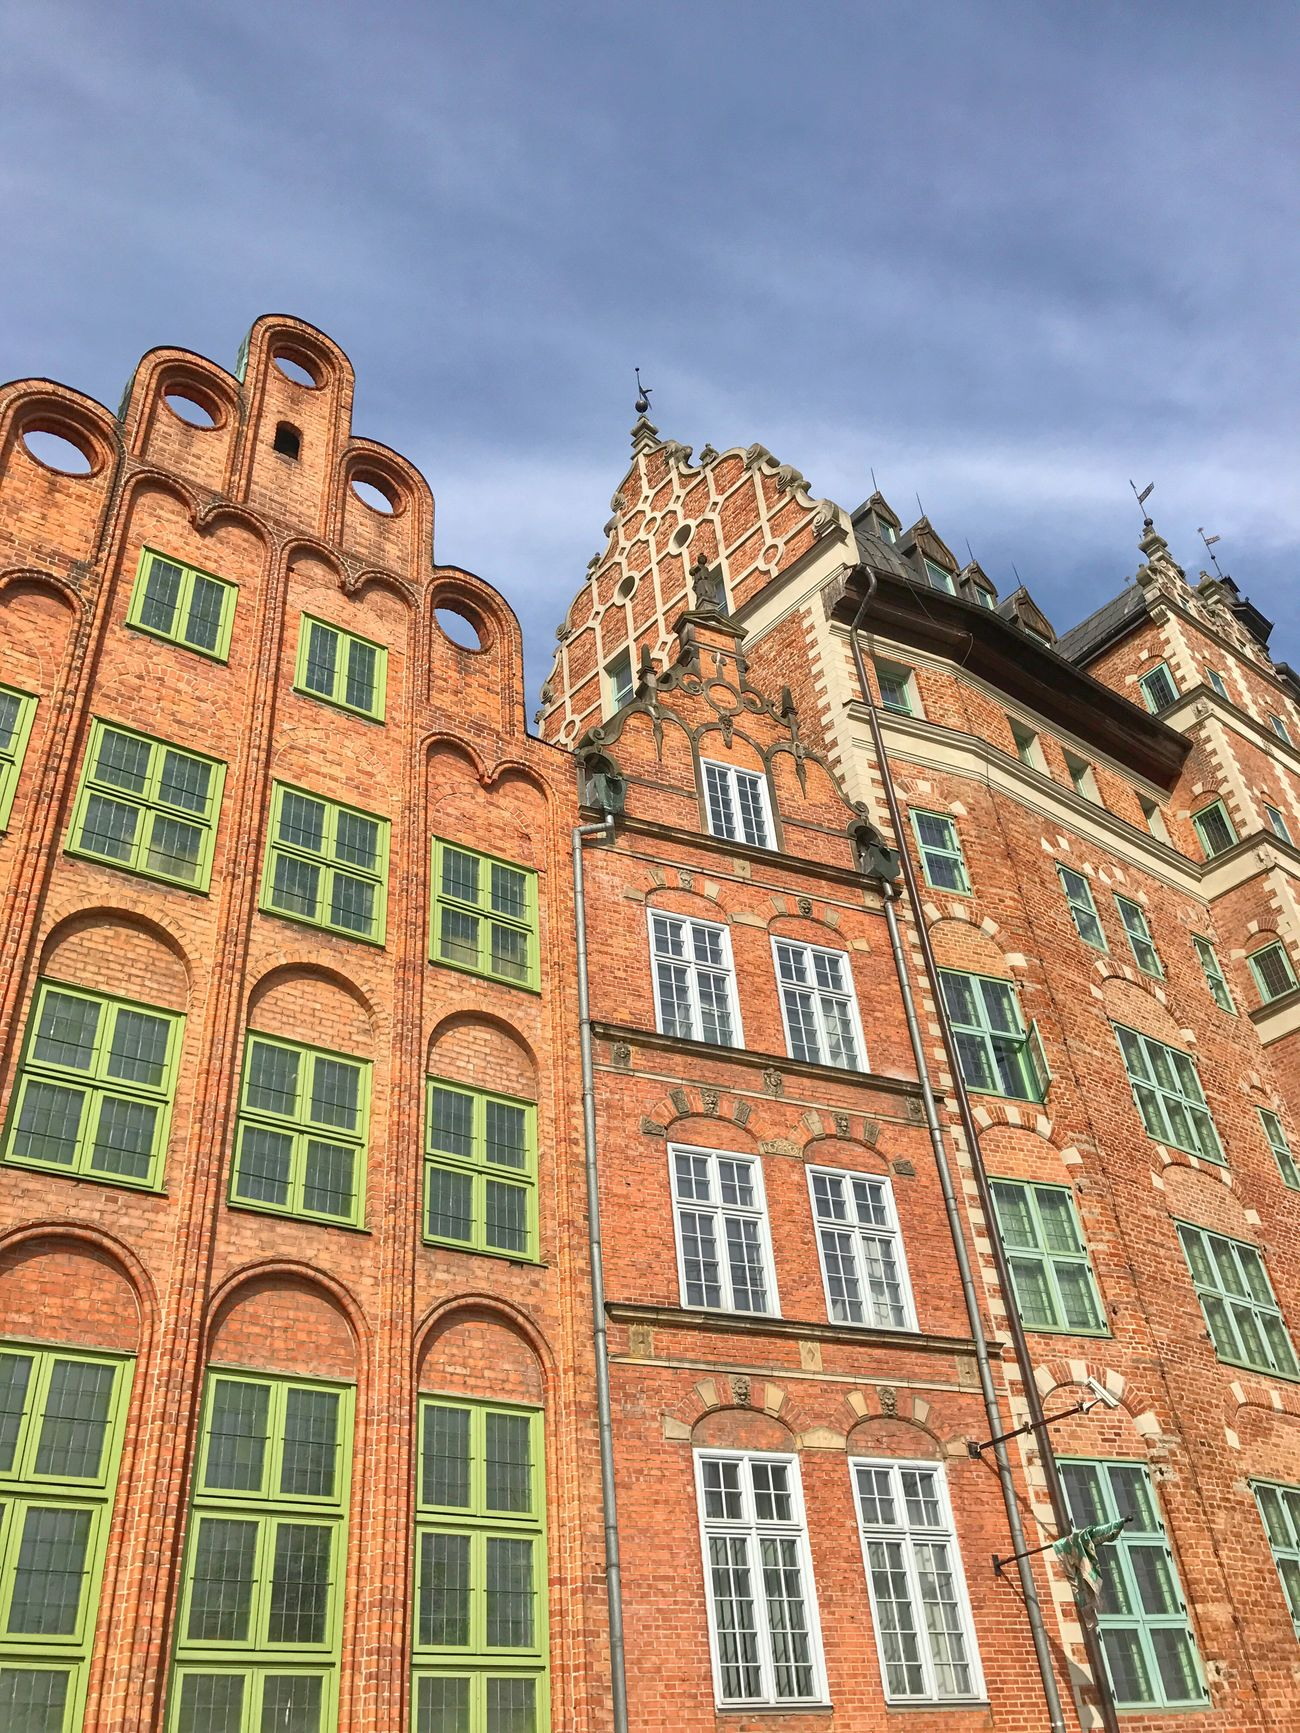 Architecture Sky Building Exterior Built Structure Low Angle View No People Outdoors Day Gdansk Poland Gdansk